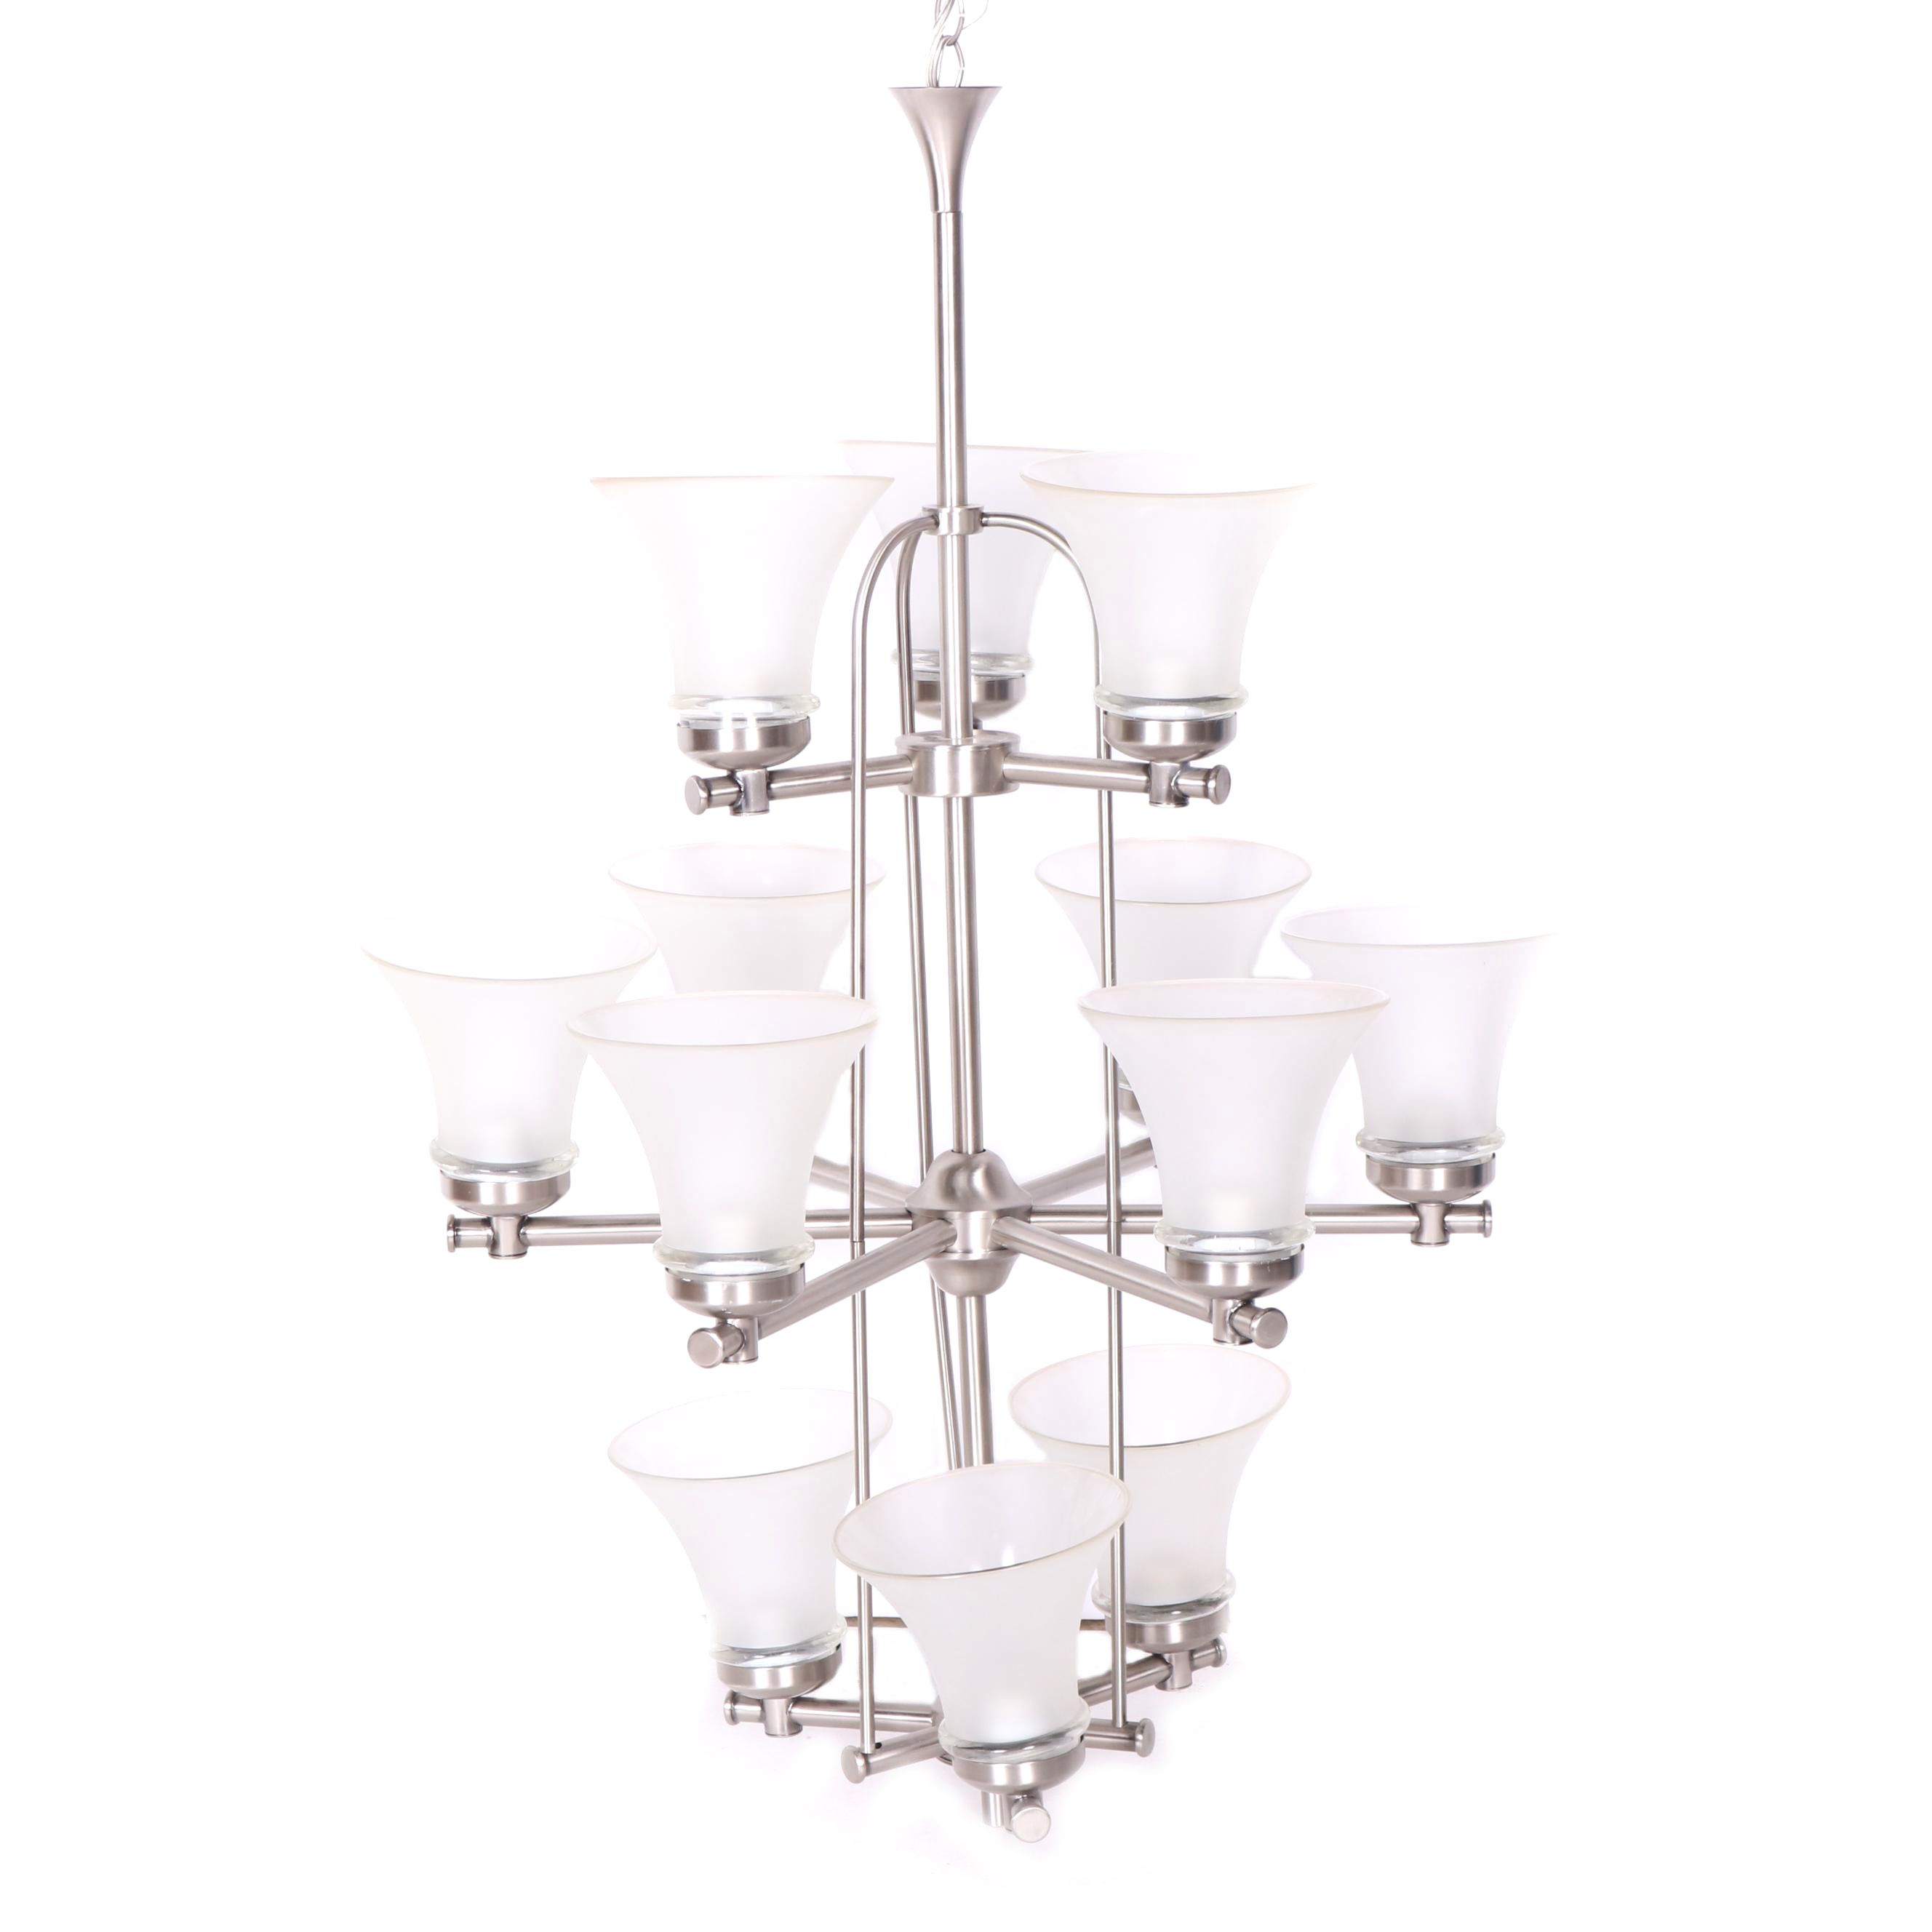 Brushed stainless steel chandelier with frosted glass shades